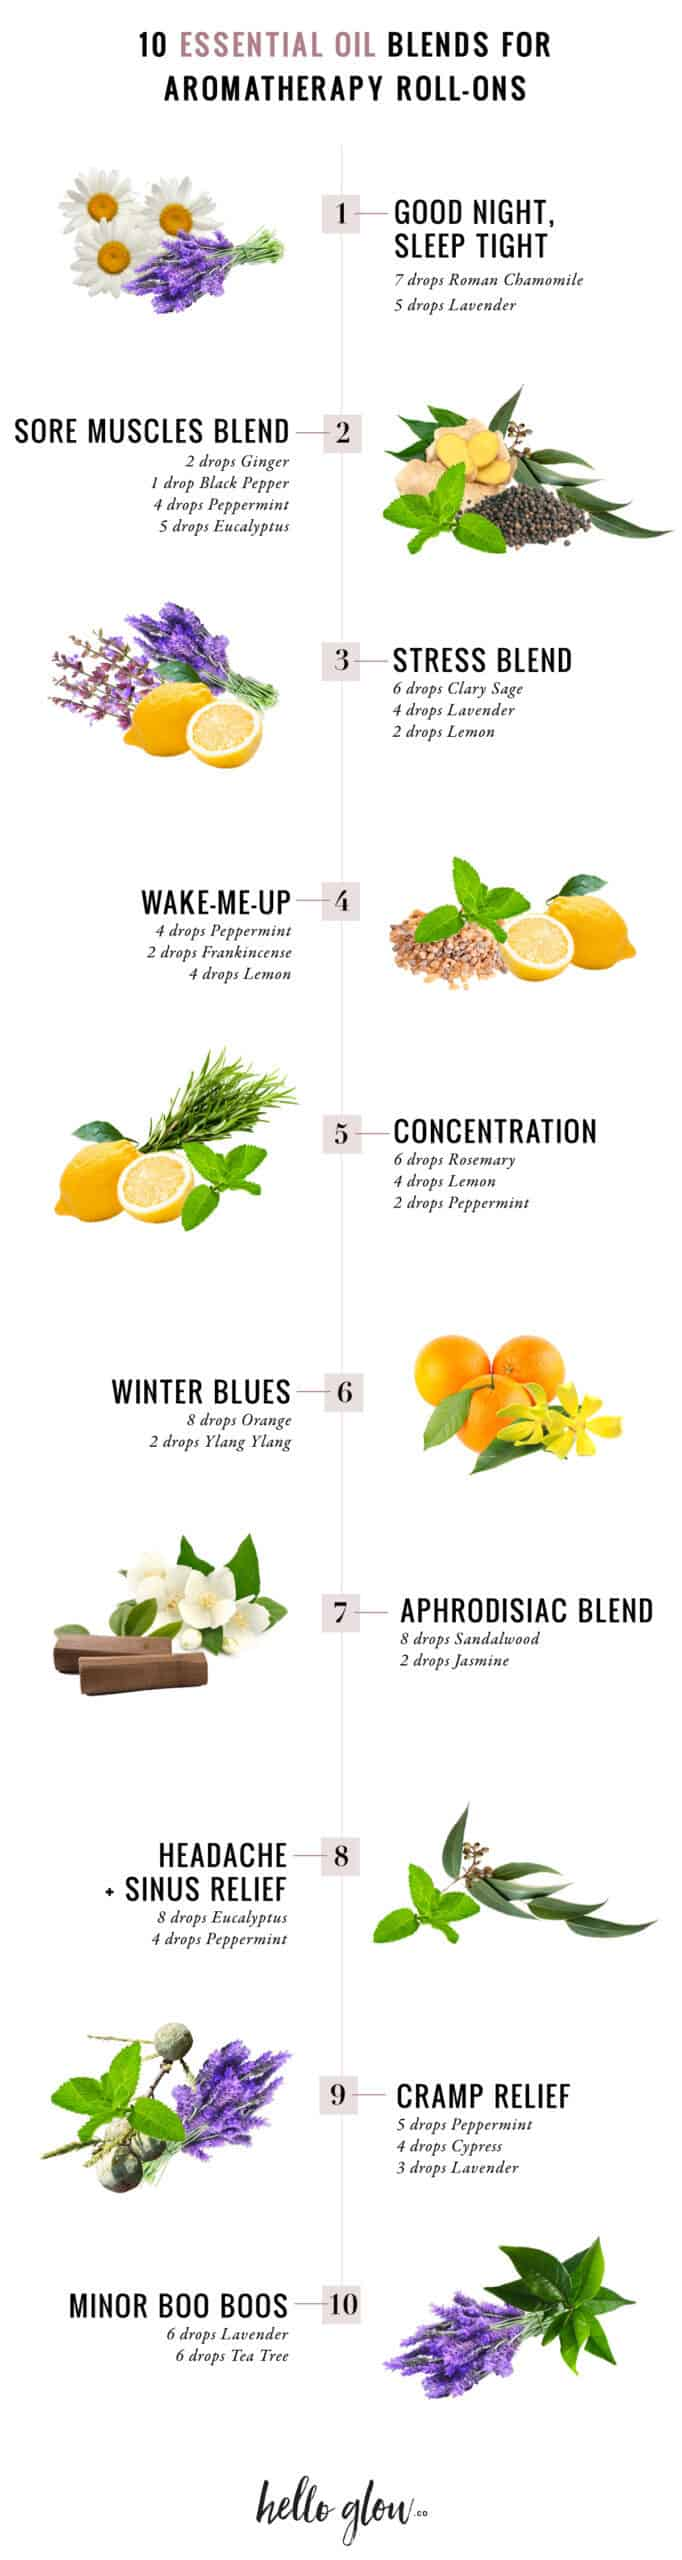 10 Essential Oil Blends for Aromatherapy Roll-Ons - HelloGlow.co